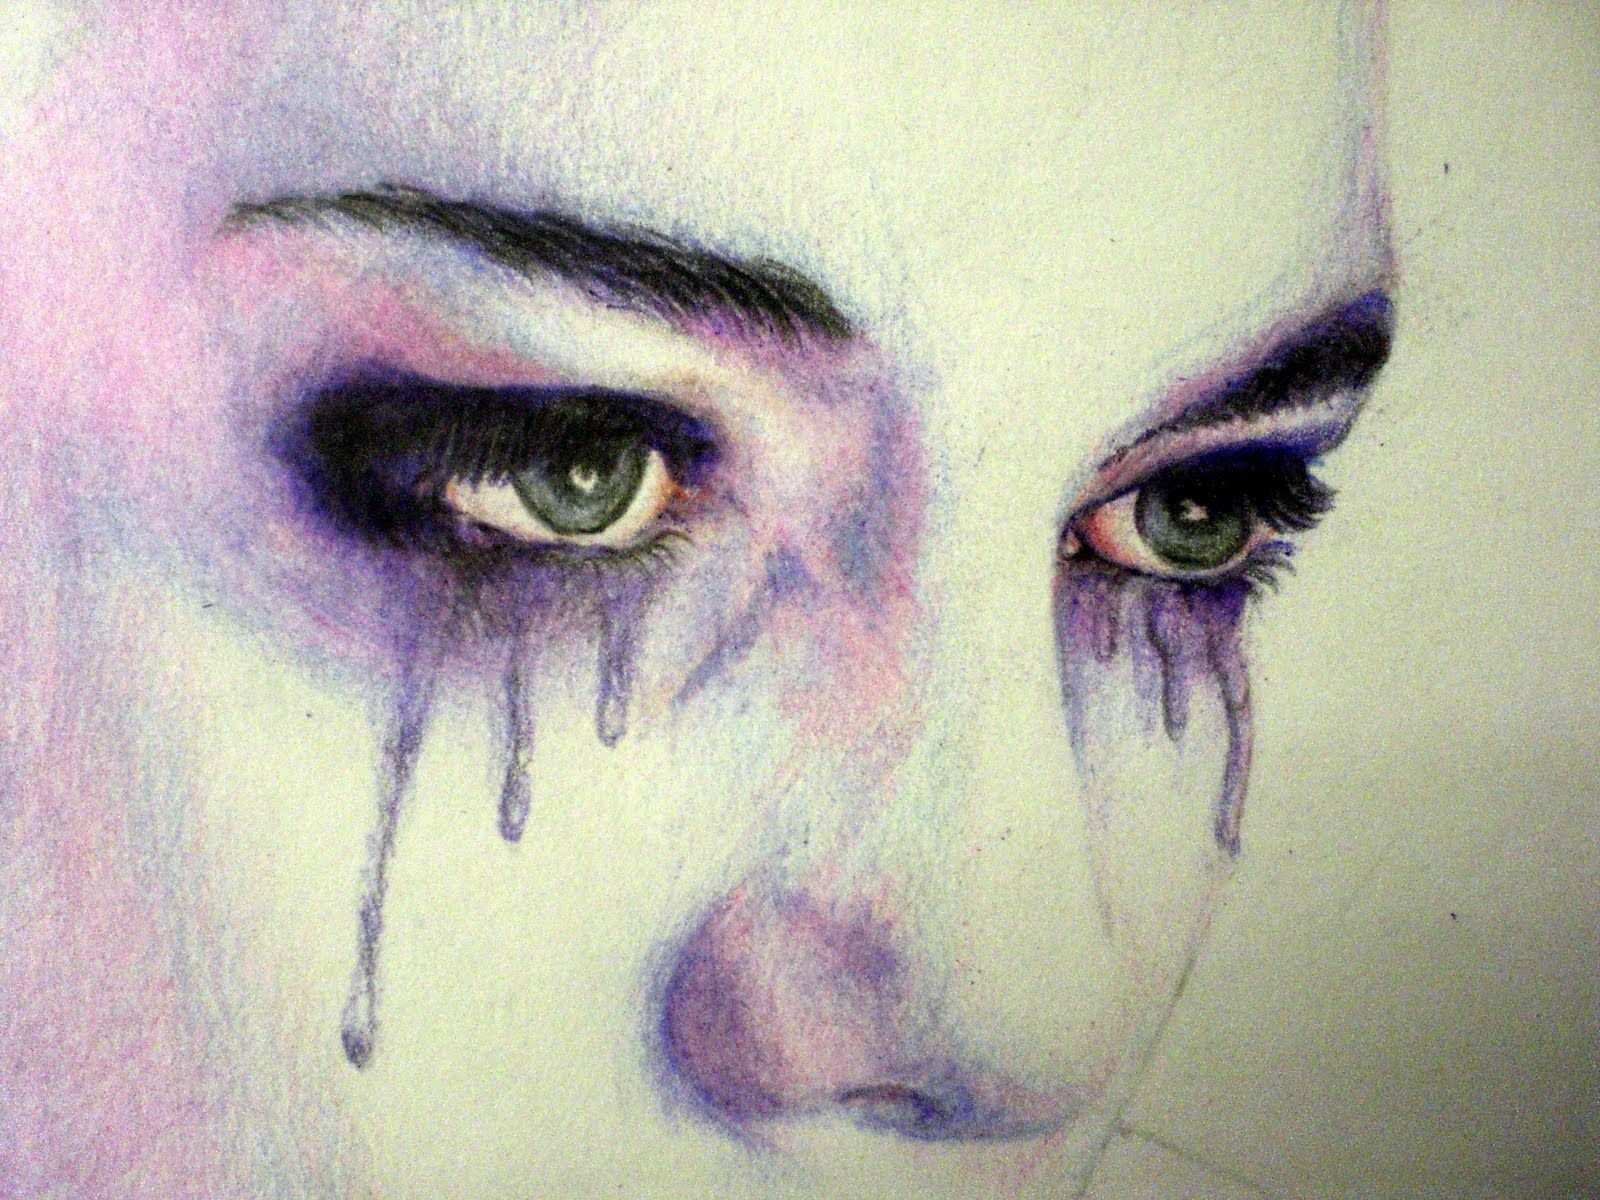 Badge makes art purple teardrops i cry sad girl art